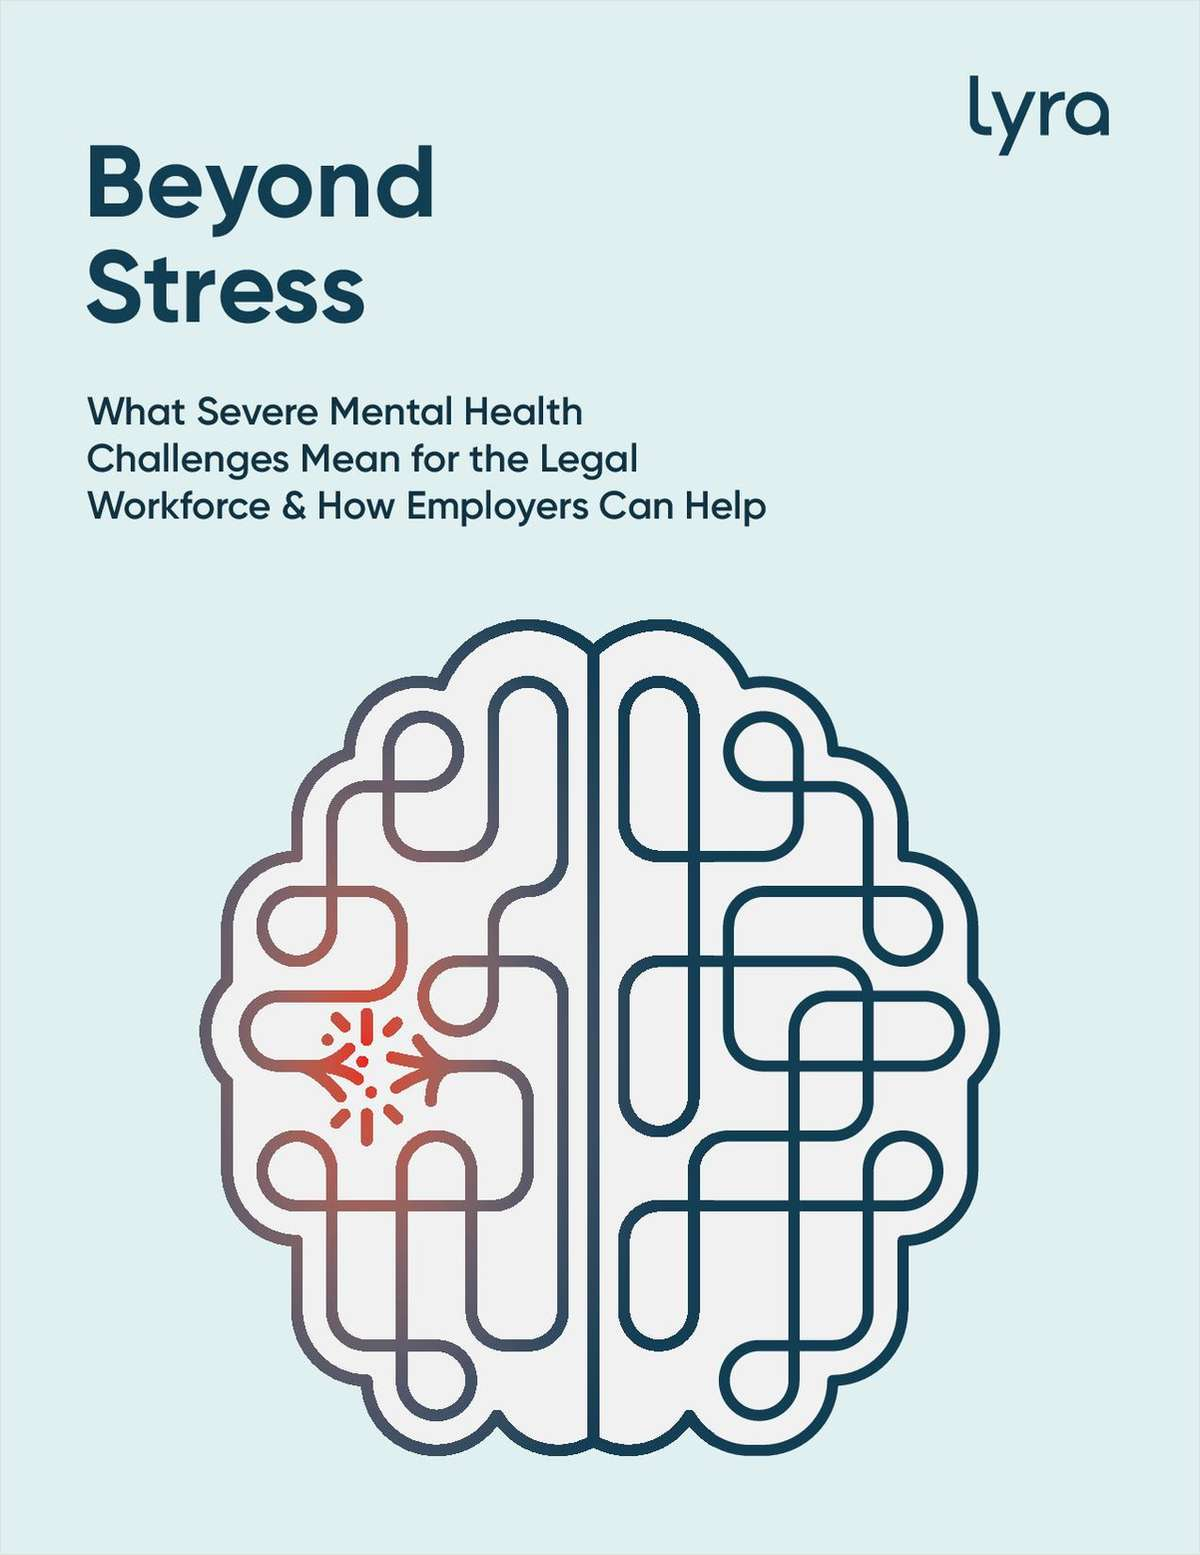 Beyond Stress: What Severe Mental Health Challenges Mean for the Workforce, and How Employers Can Help